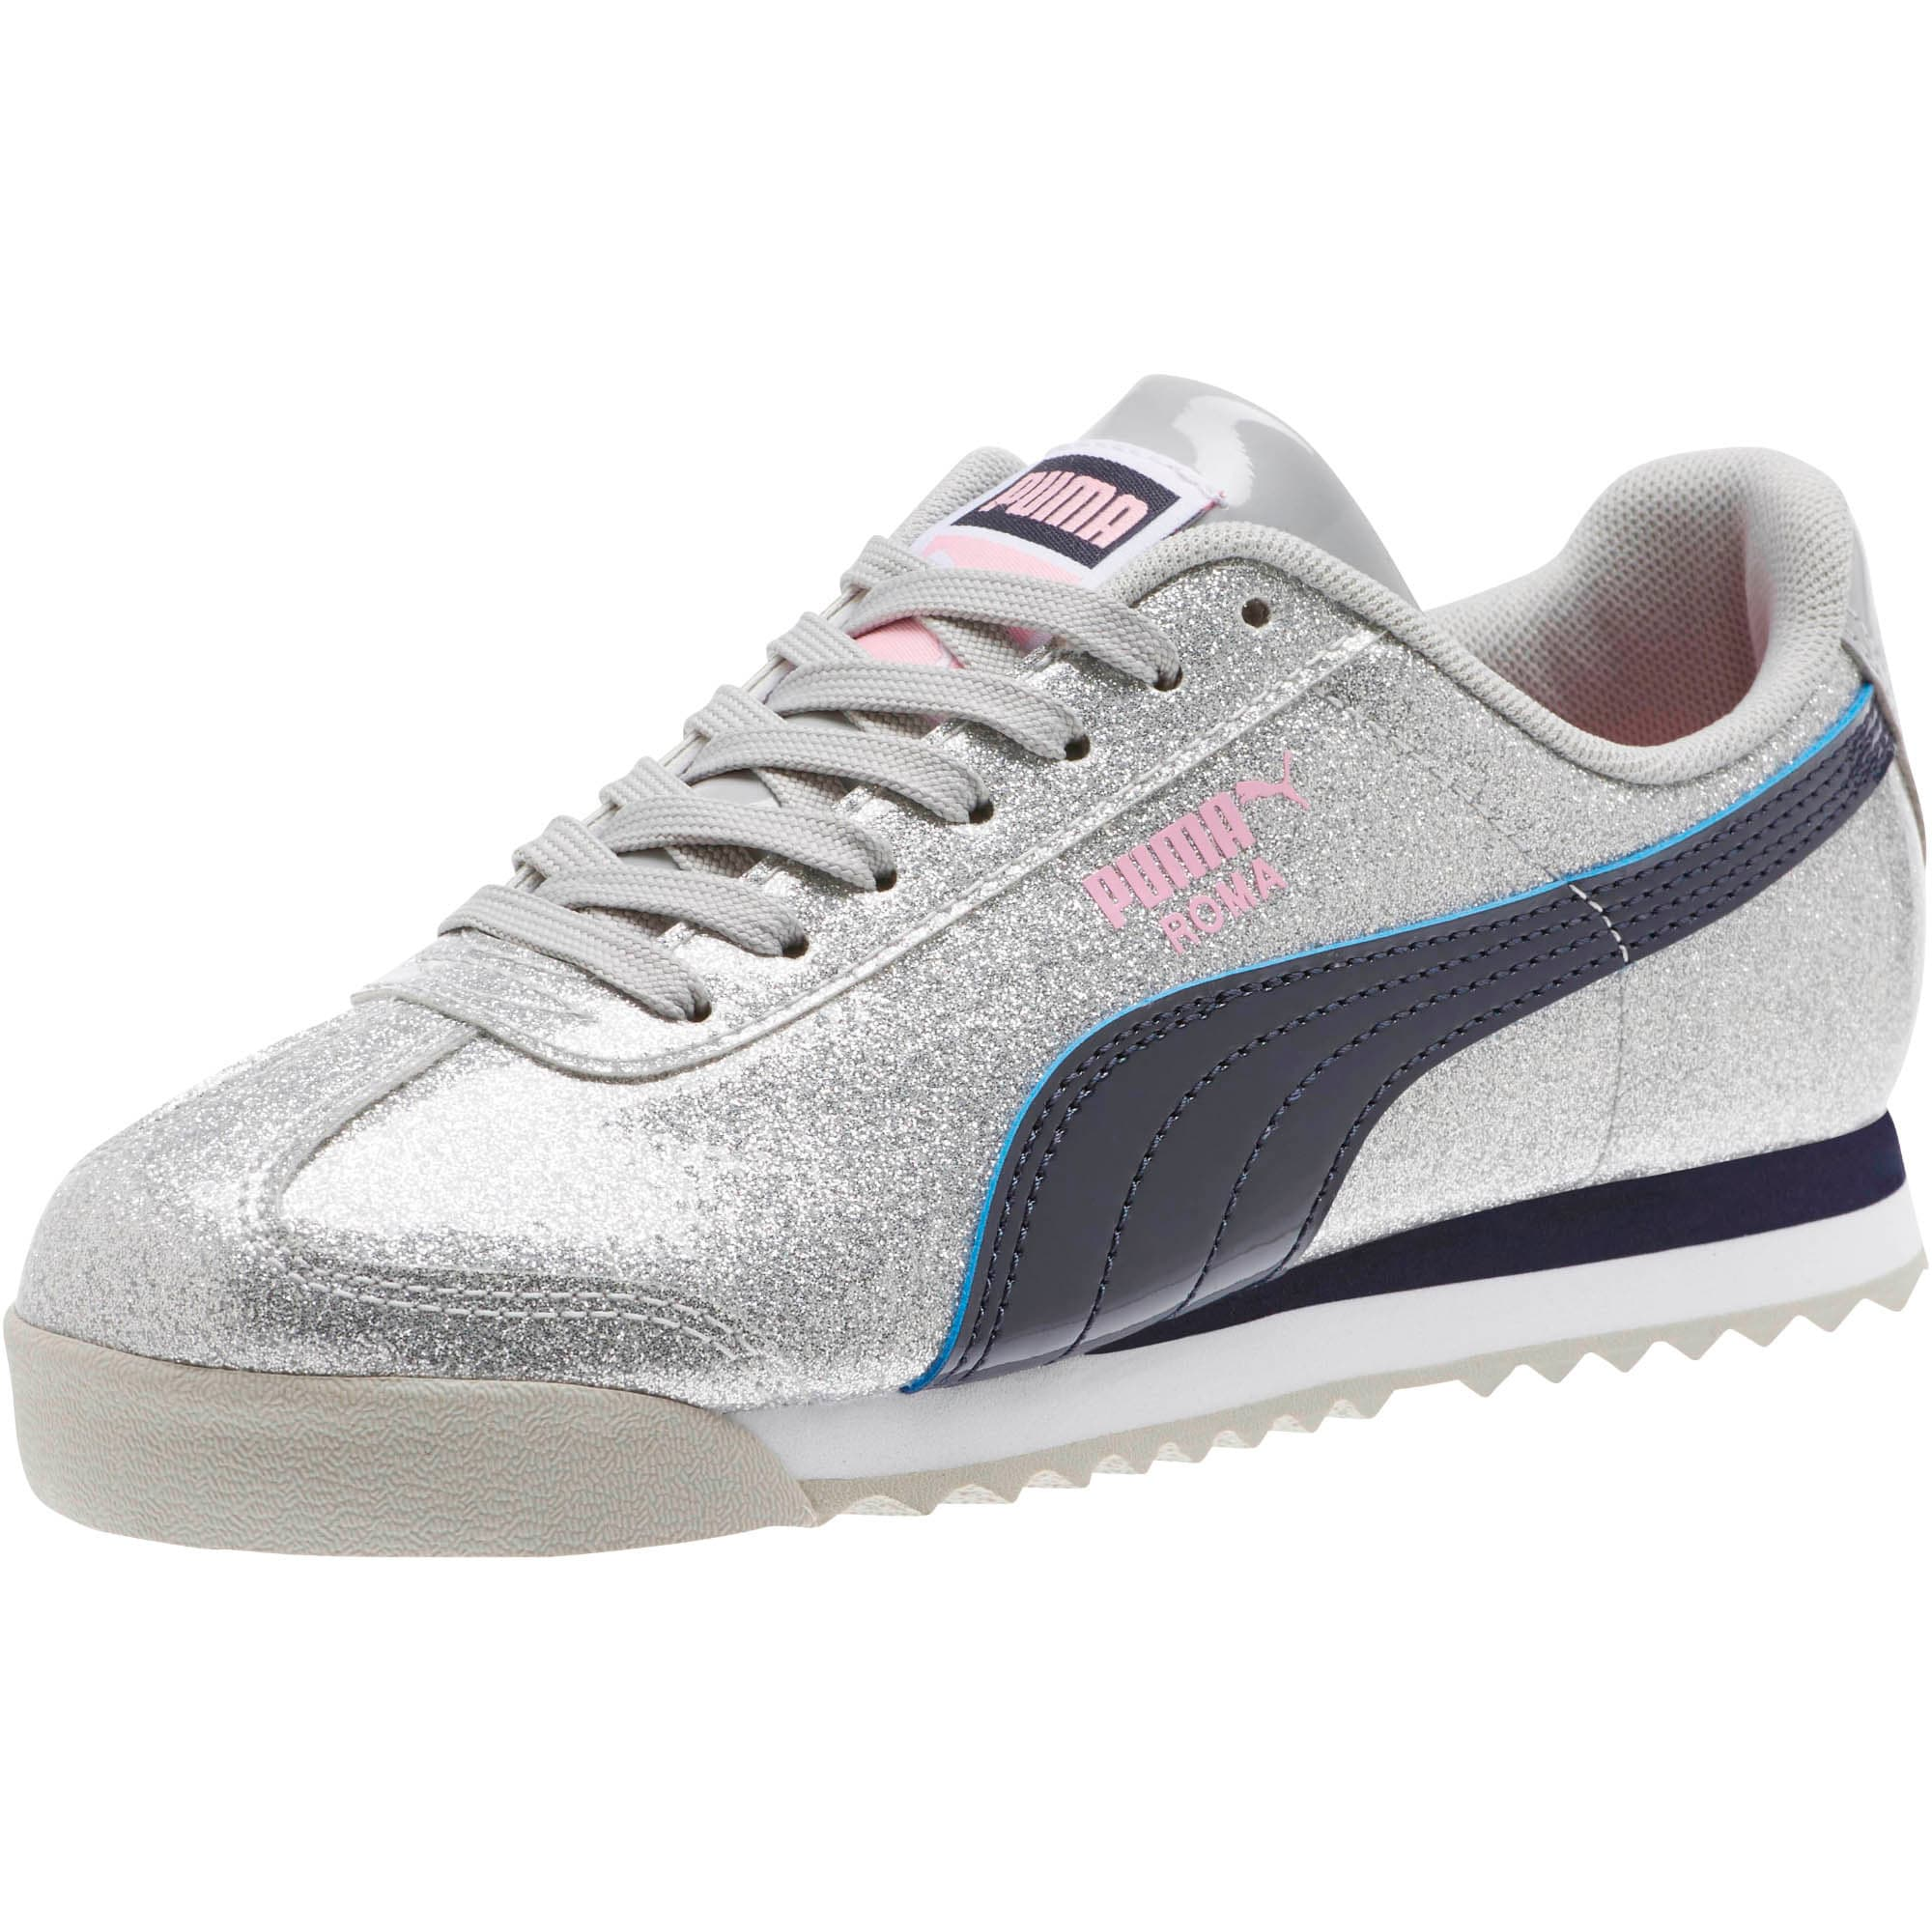 Thumbnail 1 of Roma Glam Sneakers JR, Gray Violet-Peacoat, medium